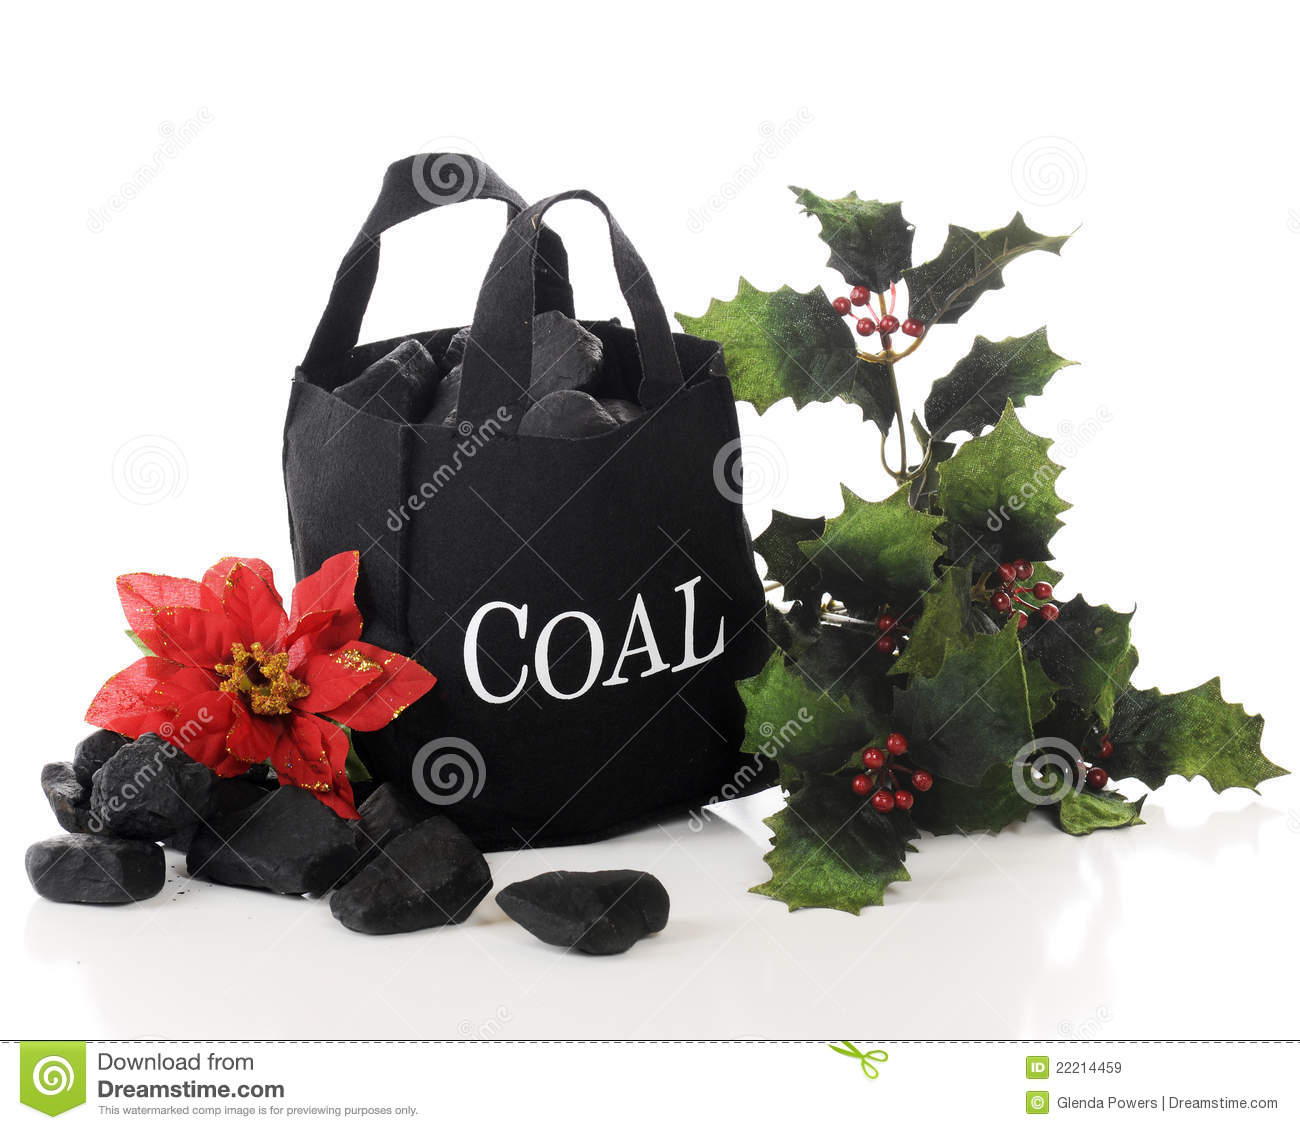 Small Black Bag Of Coal Adorned With A Poinsettia And Sprigs Of